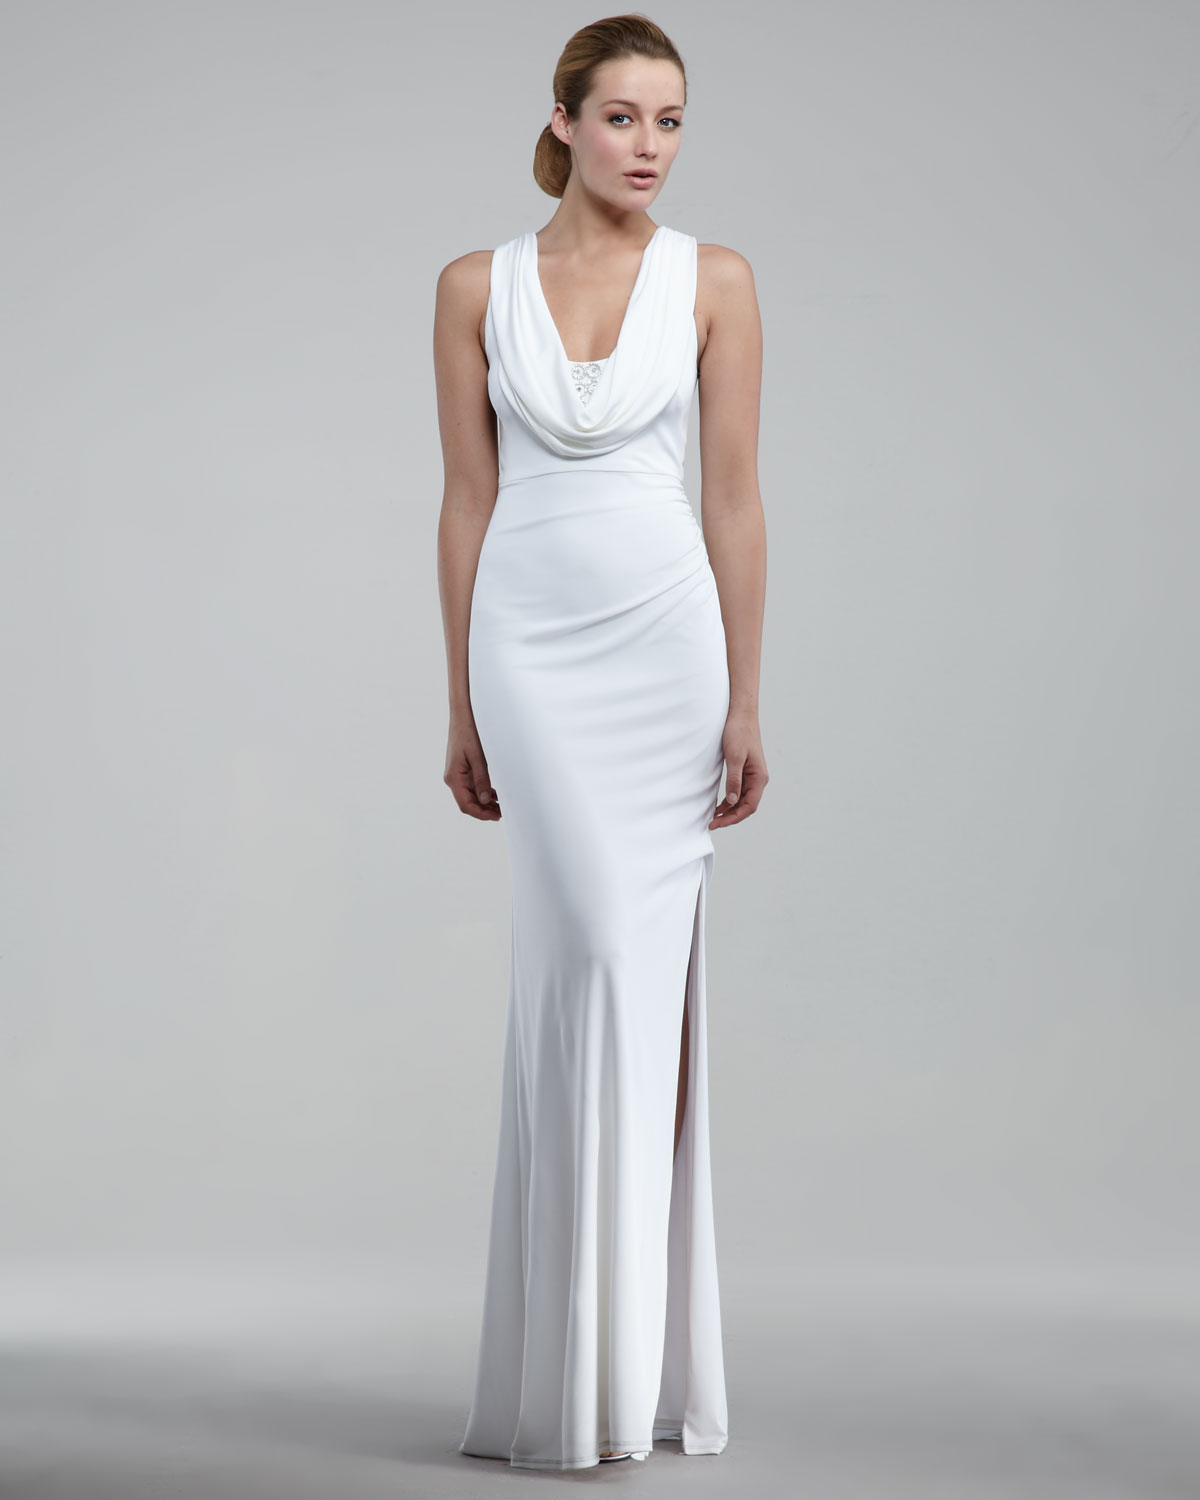 Cowl Neck Wedding Gown: David Meister Cowl-neck Gown In White